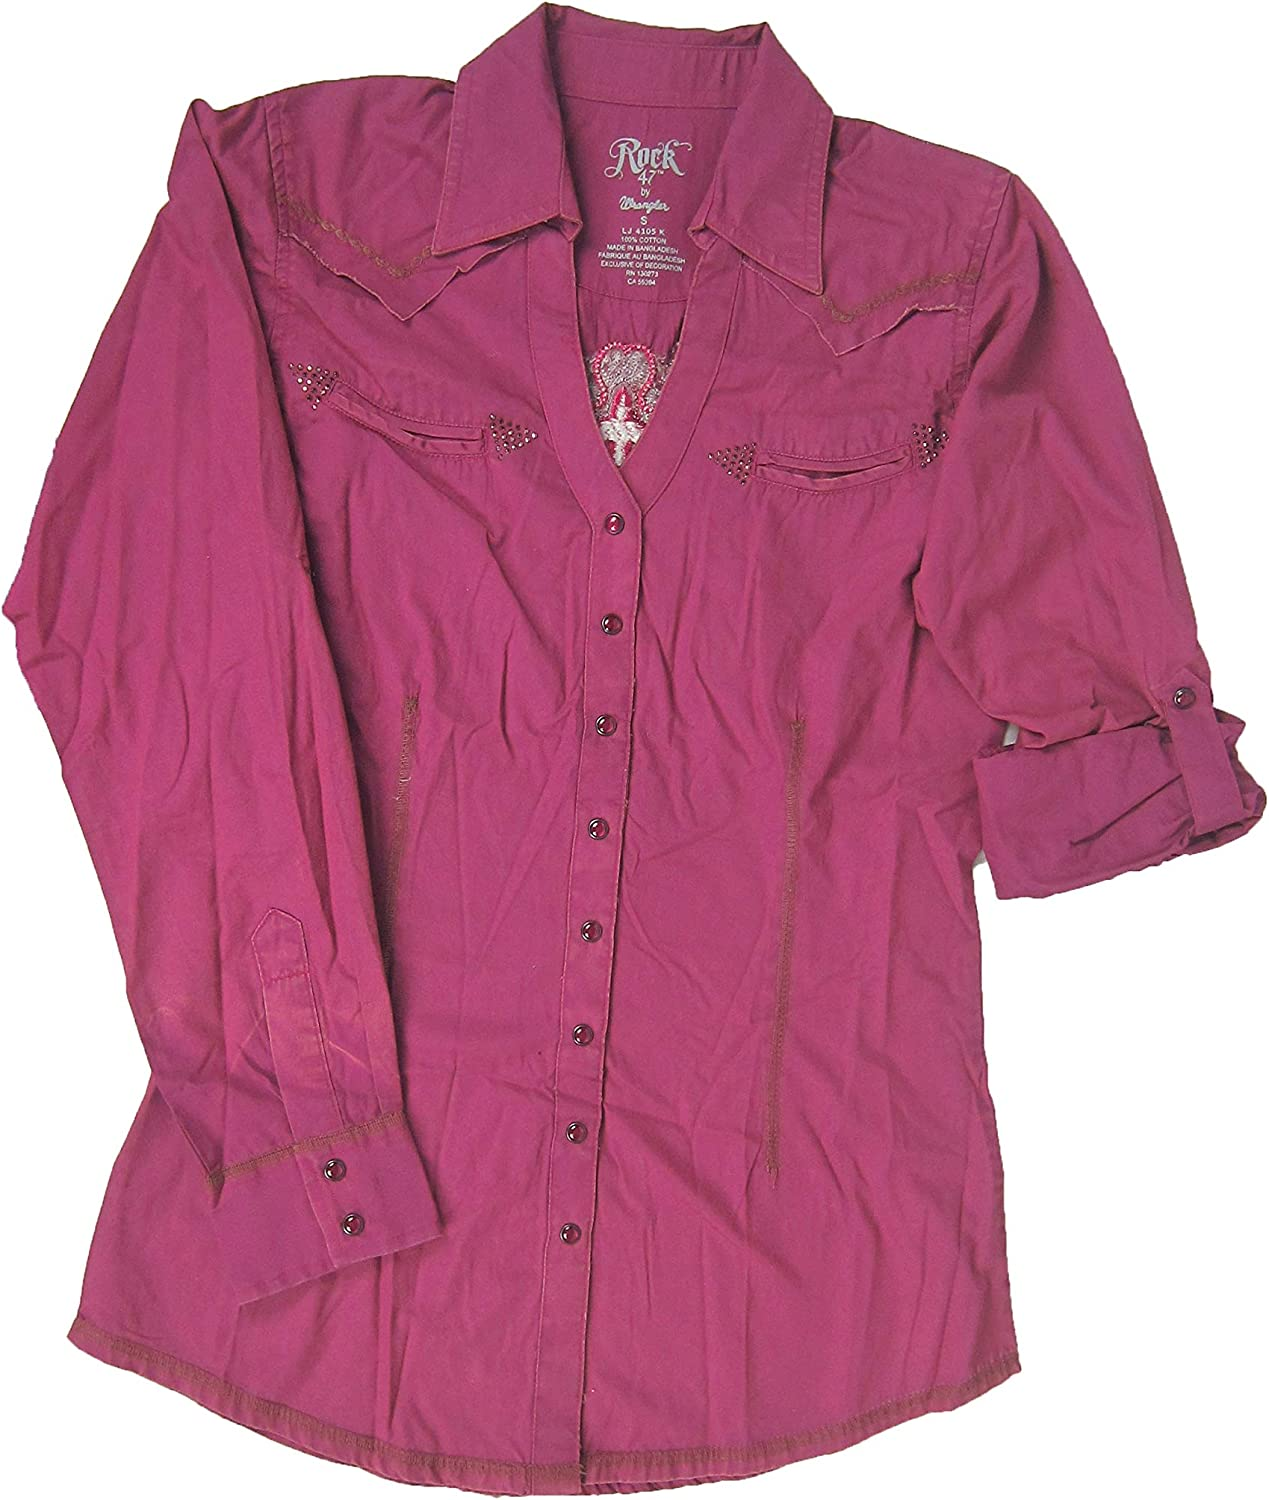 Wrangler Rock 47 Ladies Button Down Blouse, Pink, Small